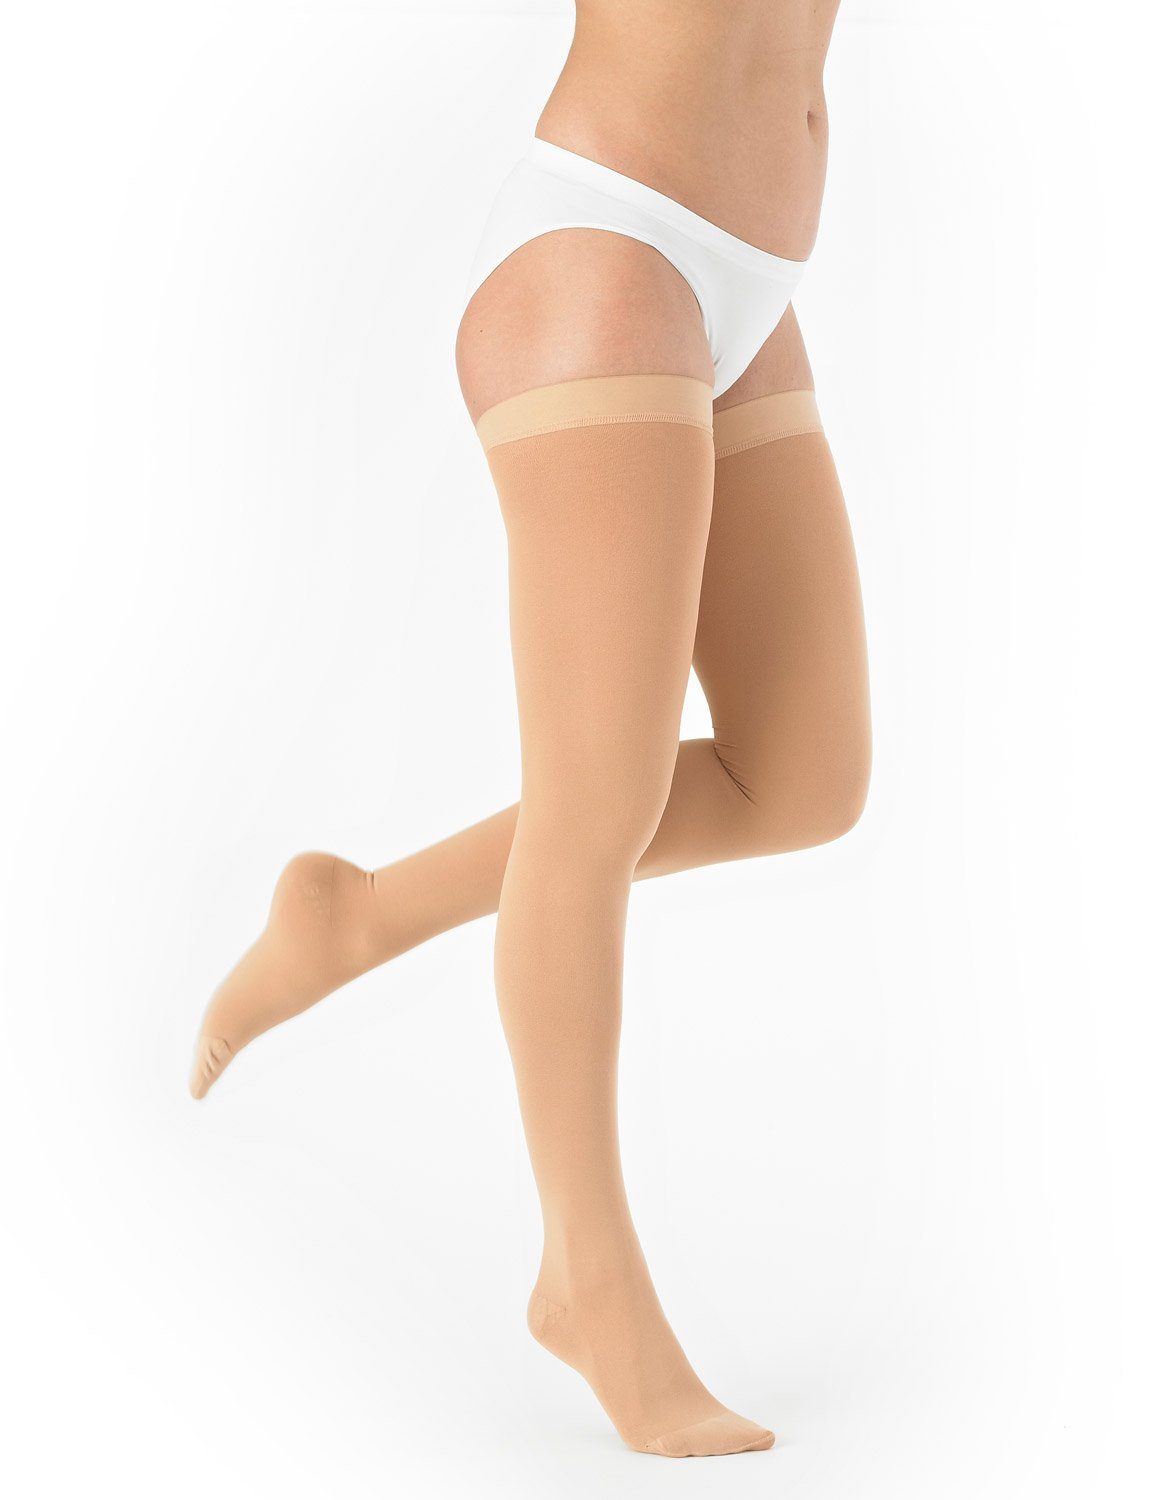 NEO G Thigh High Compression Hosiery (Closed Toe) - XX-LARGE - Black - Medical Grade True Graduated Compression 20-30mmHg HELPS reduce symptoms of tired, aching legs, mild oedema (edema) & swelling